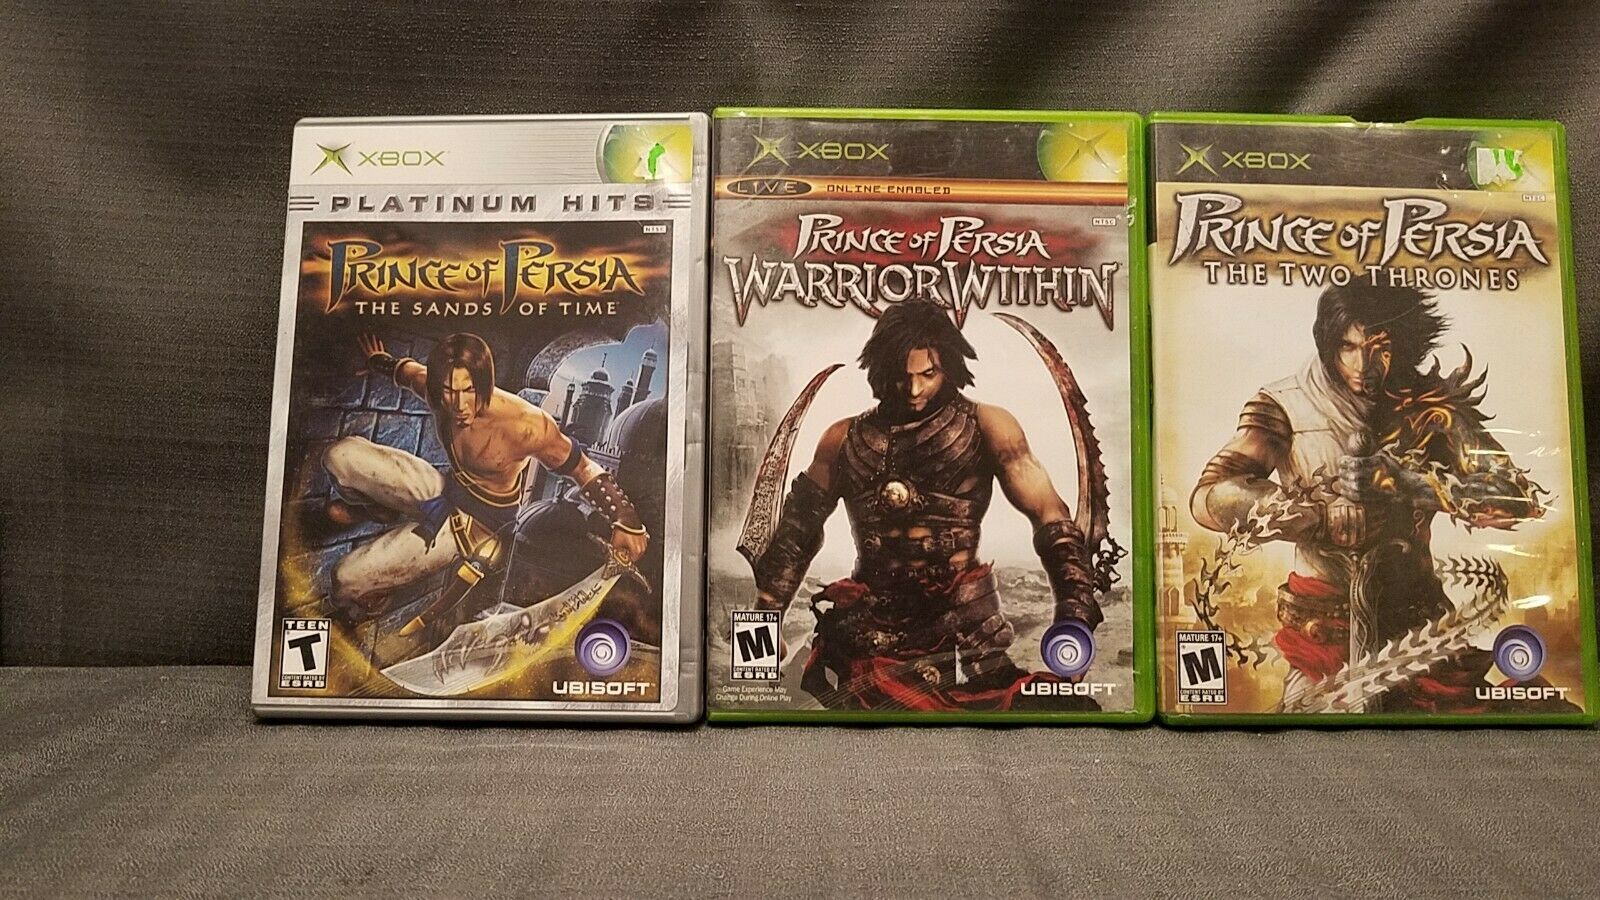 Lot of 3x Xbox Games Prince of Persia Sands Time Warrior Within Two Thrones